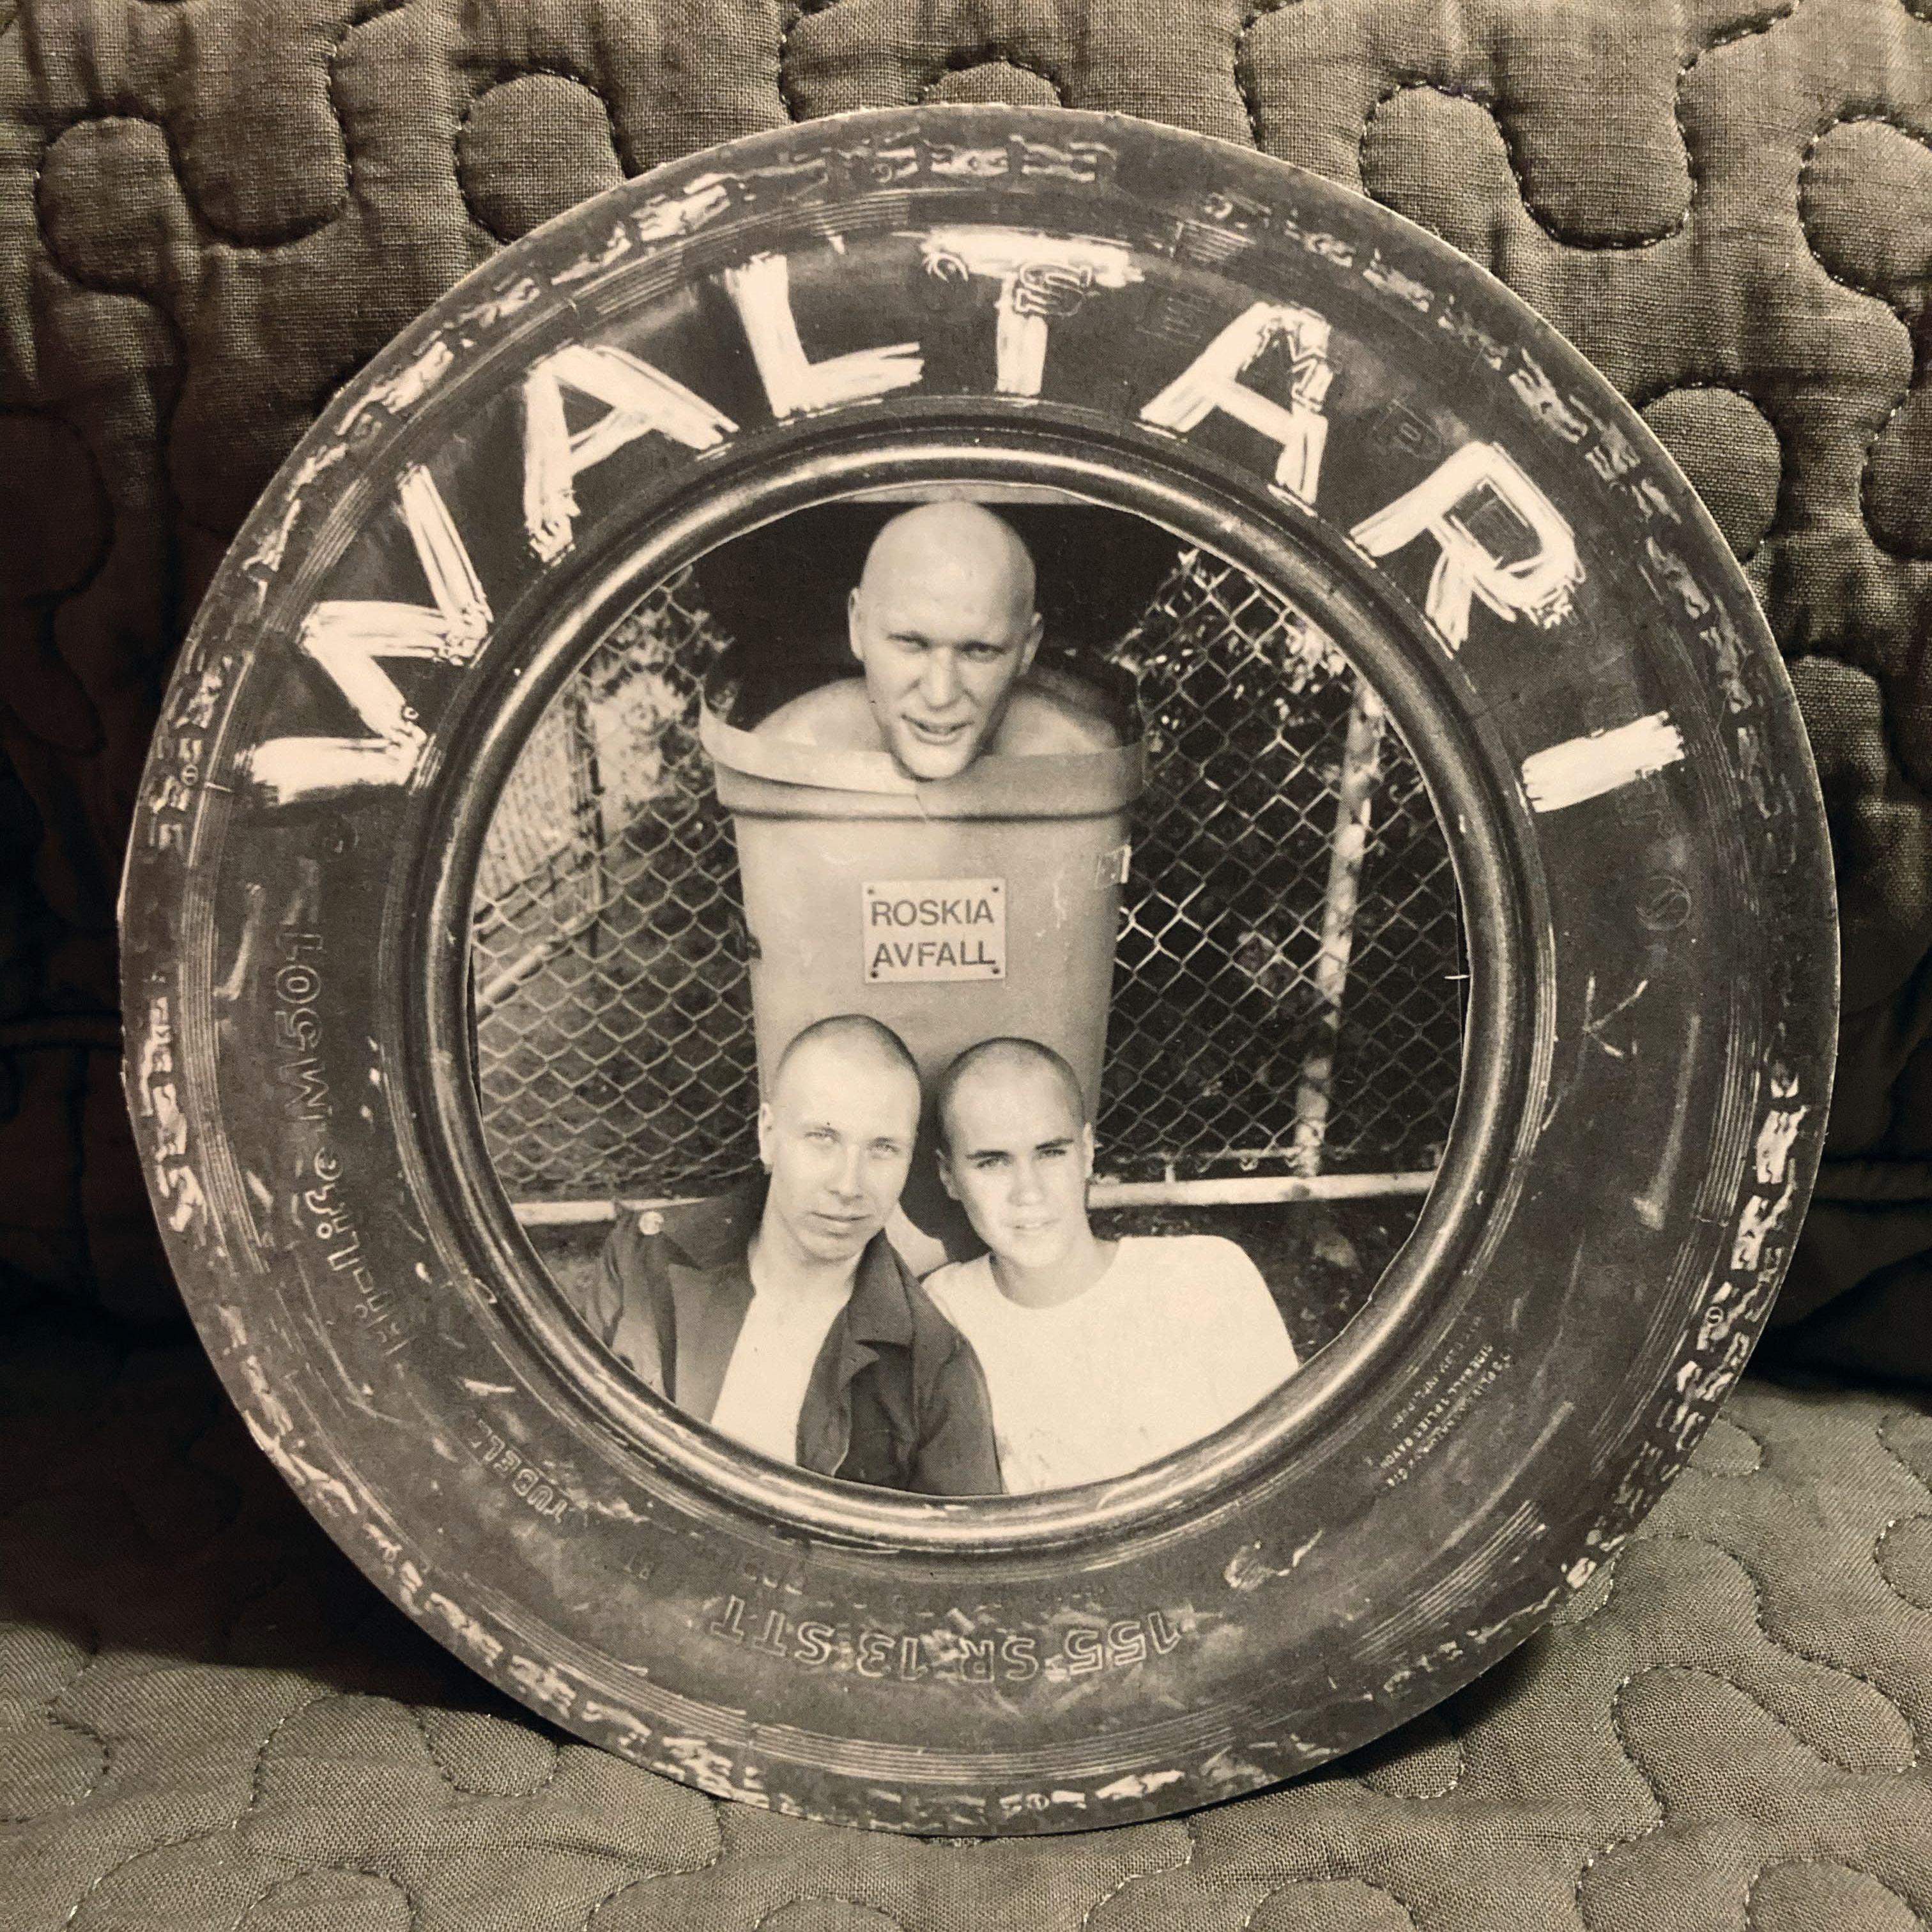 Waltari Rap Your Body beat / Shout (Sonic Records SONIC-3) LP undefined